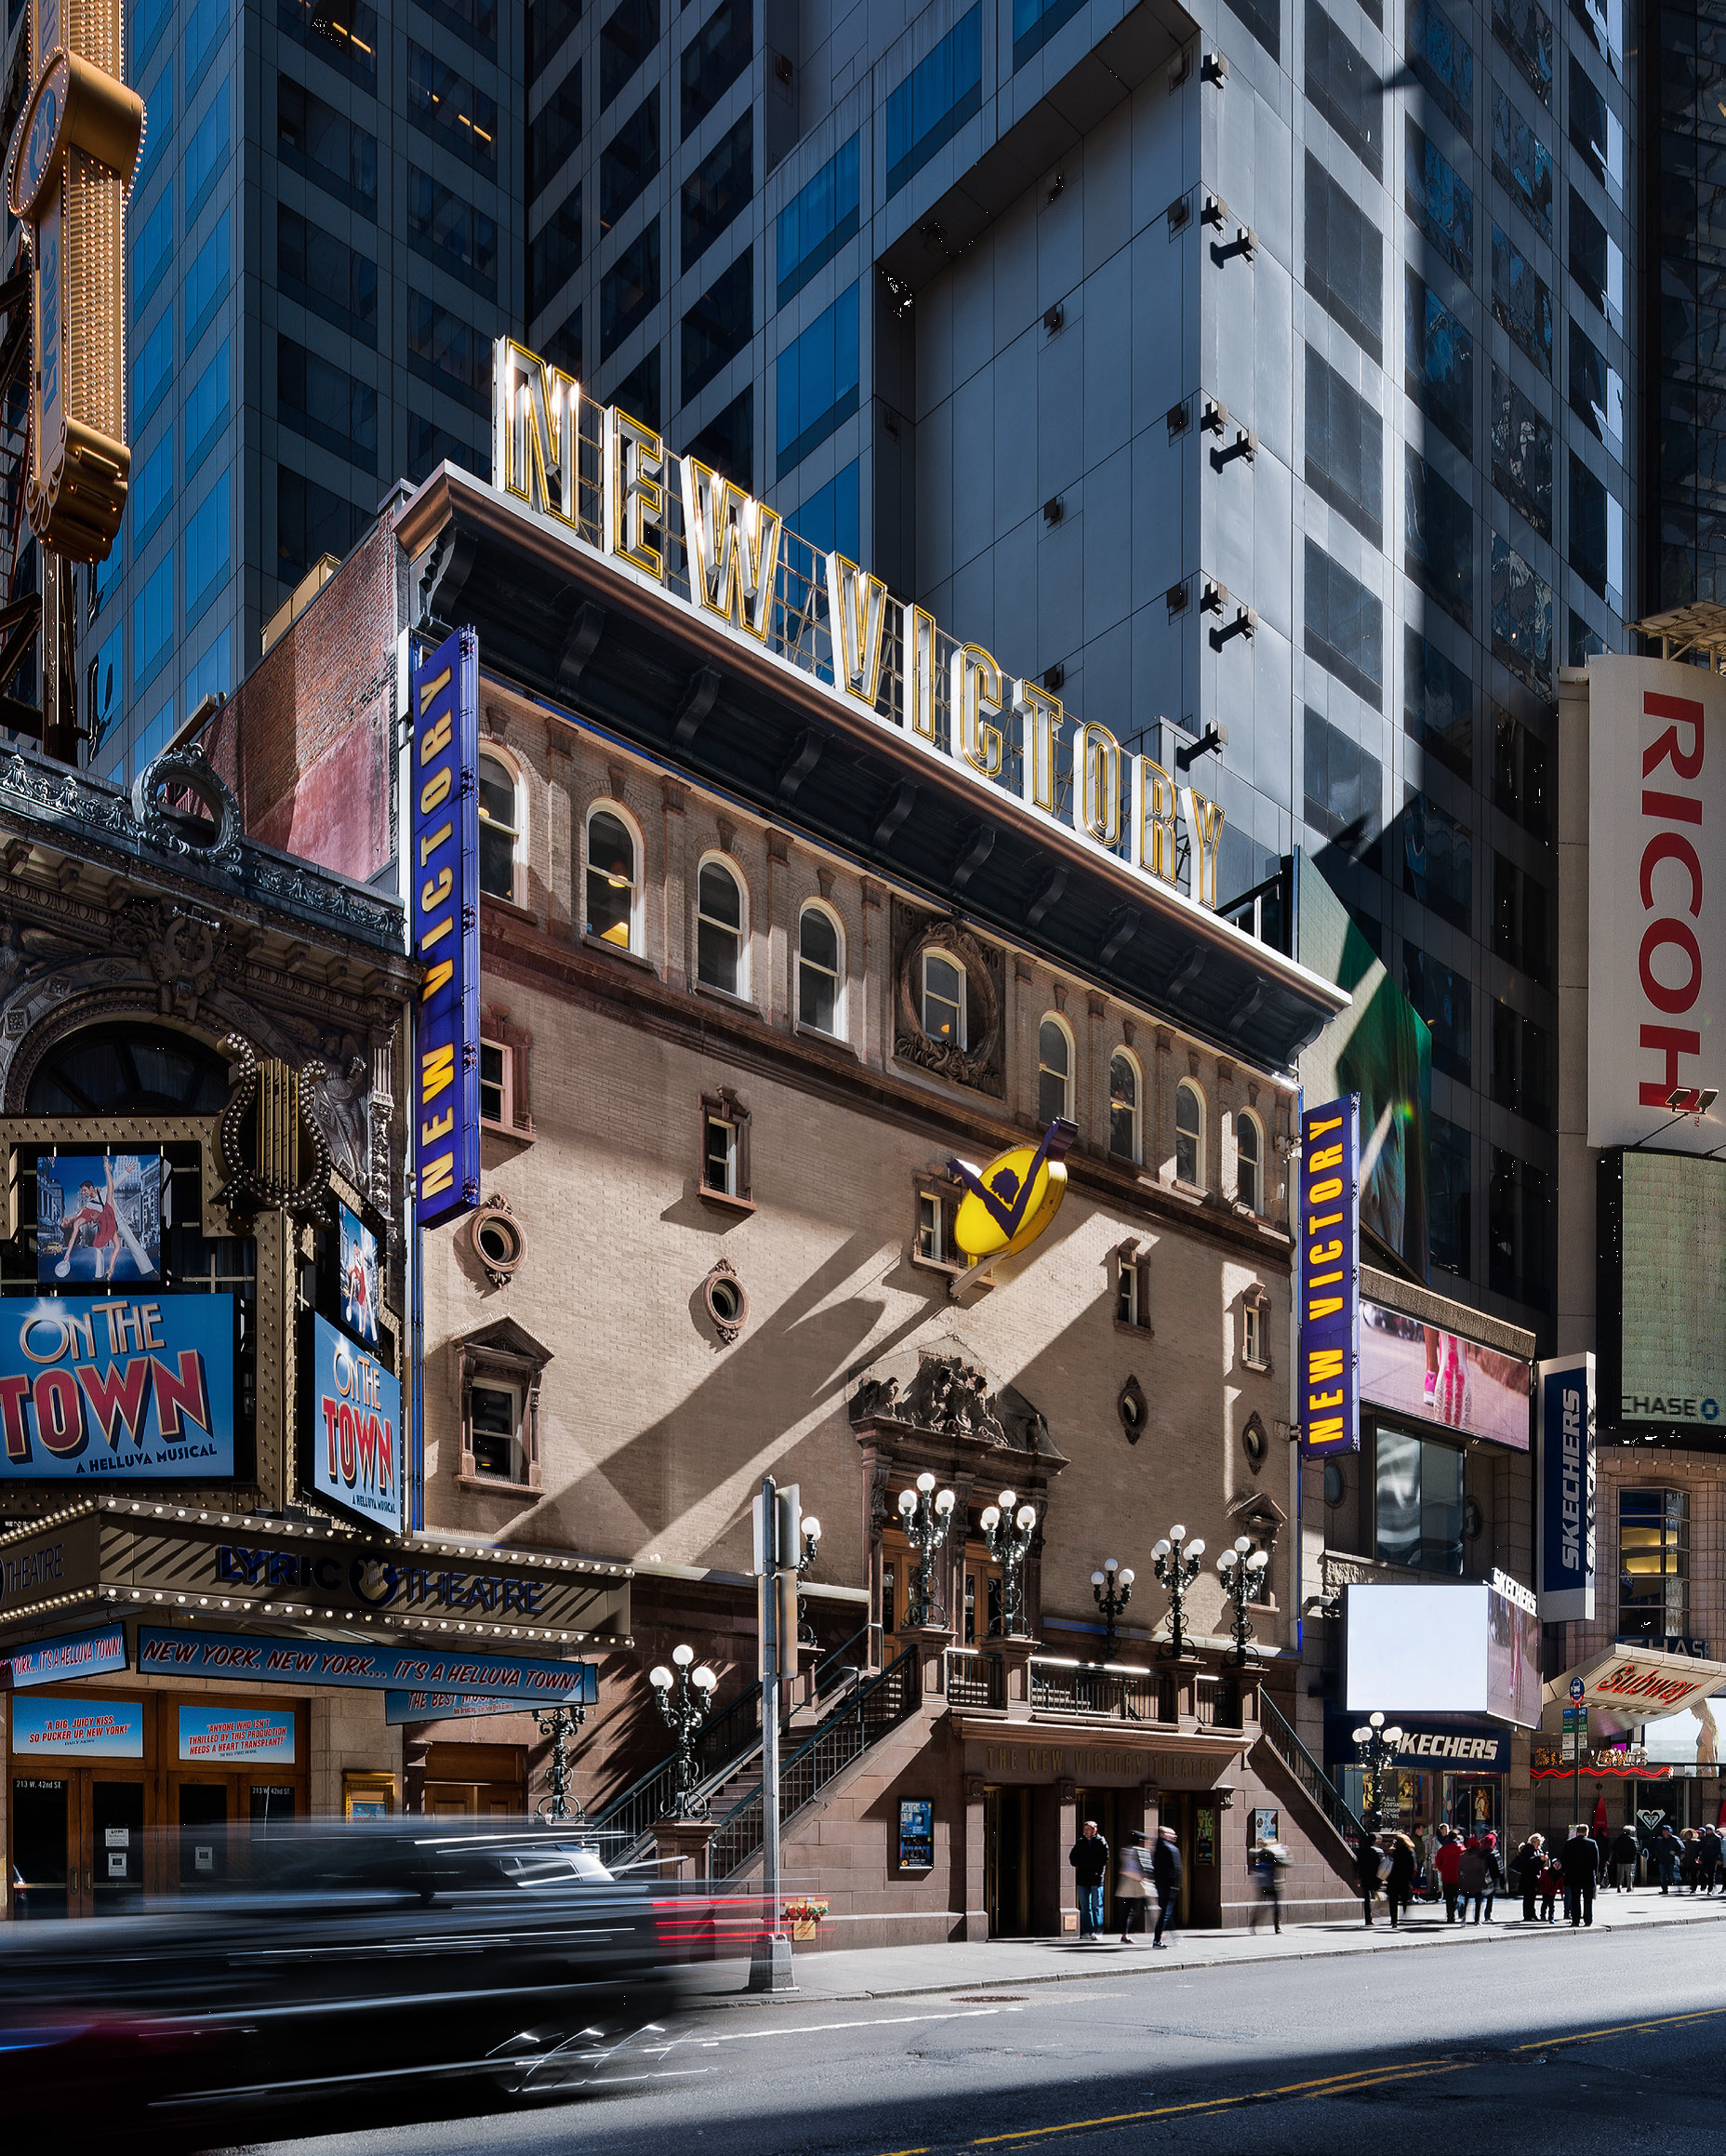 New Victory Theater (image from New Victory Theater Press Kit)